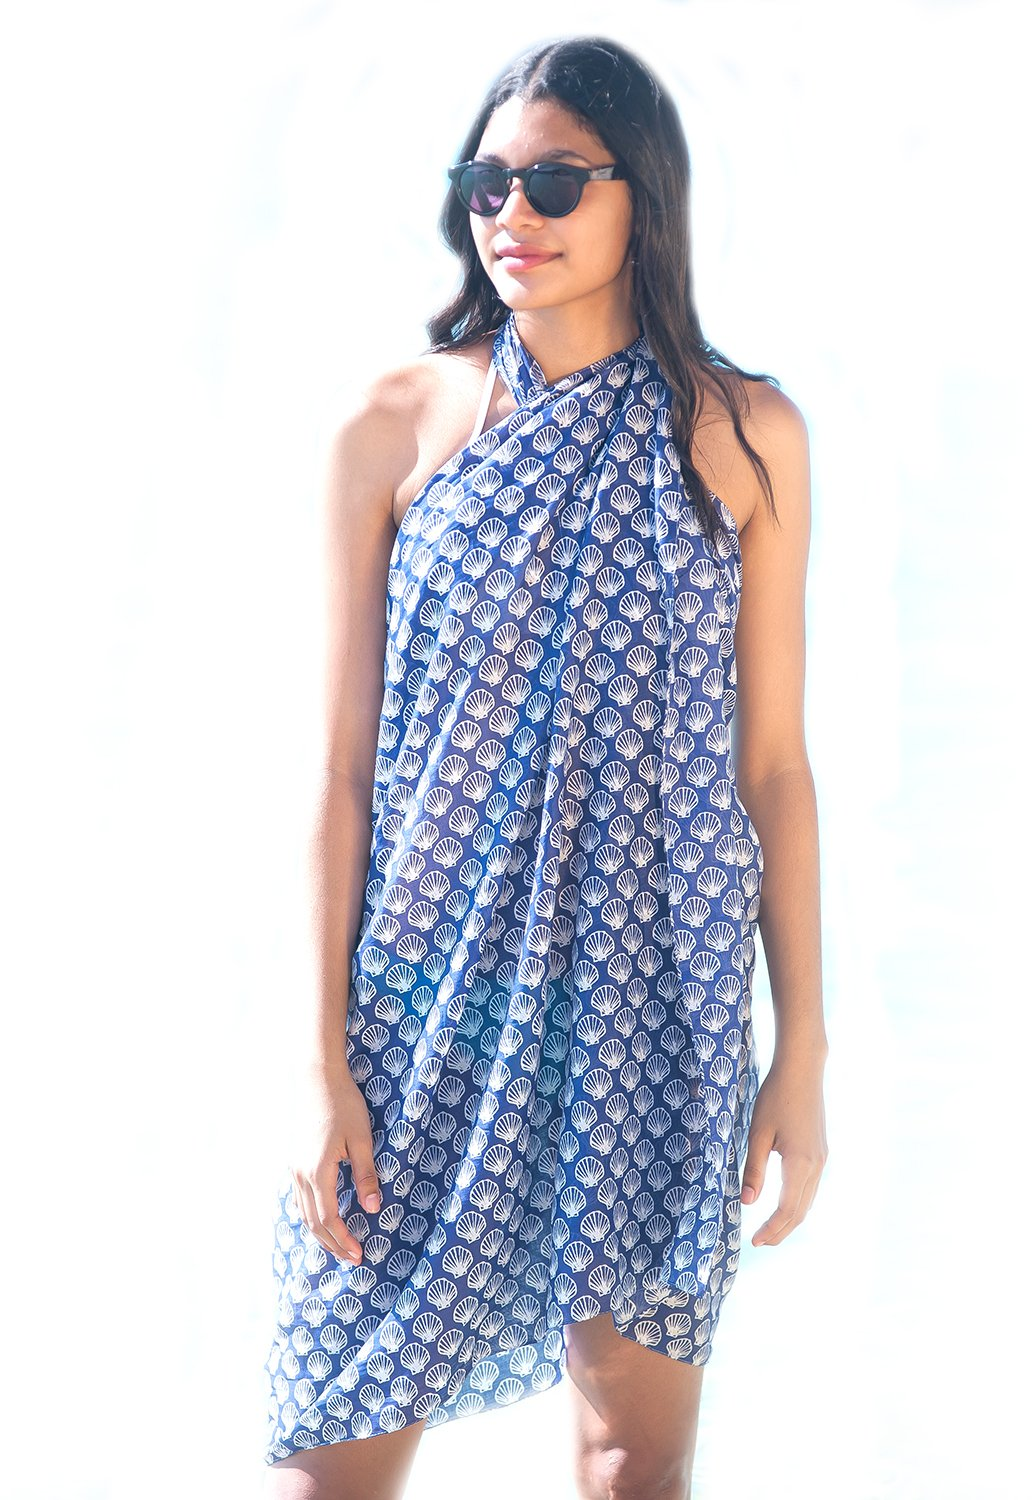 West Indies 100% Pure Cotton Sarong Pareo Swimsuit Bikini Cover-Up Beach Wear Cruise Wear Resort Wear Island Wear Great Gift for Birthdays Brides Mother's Day (Shell French Blue)